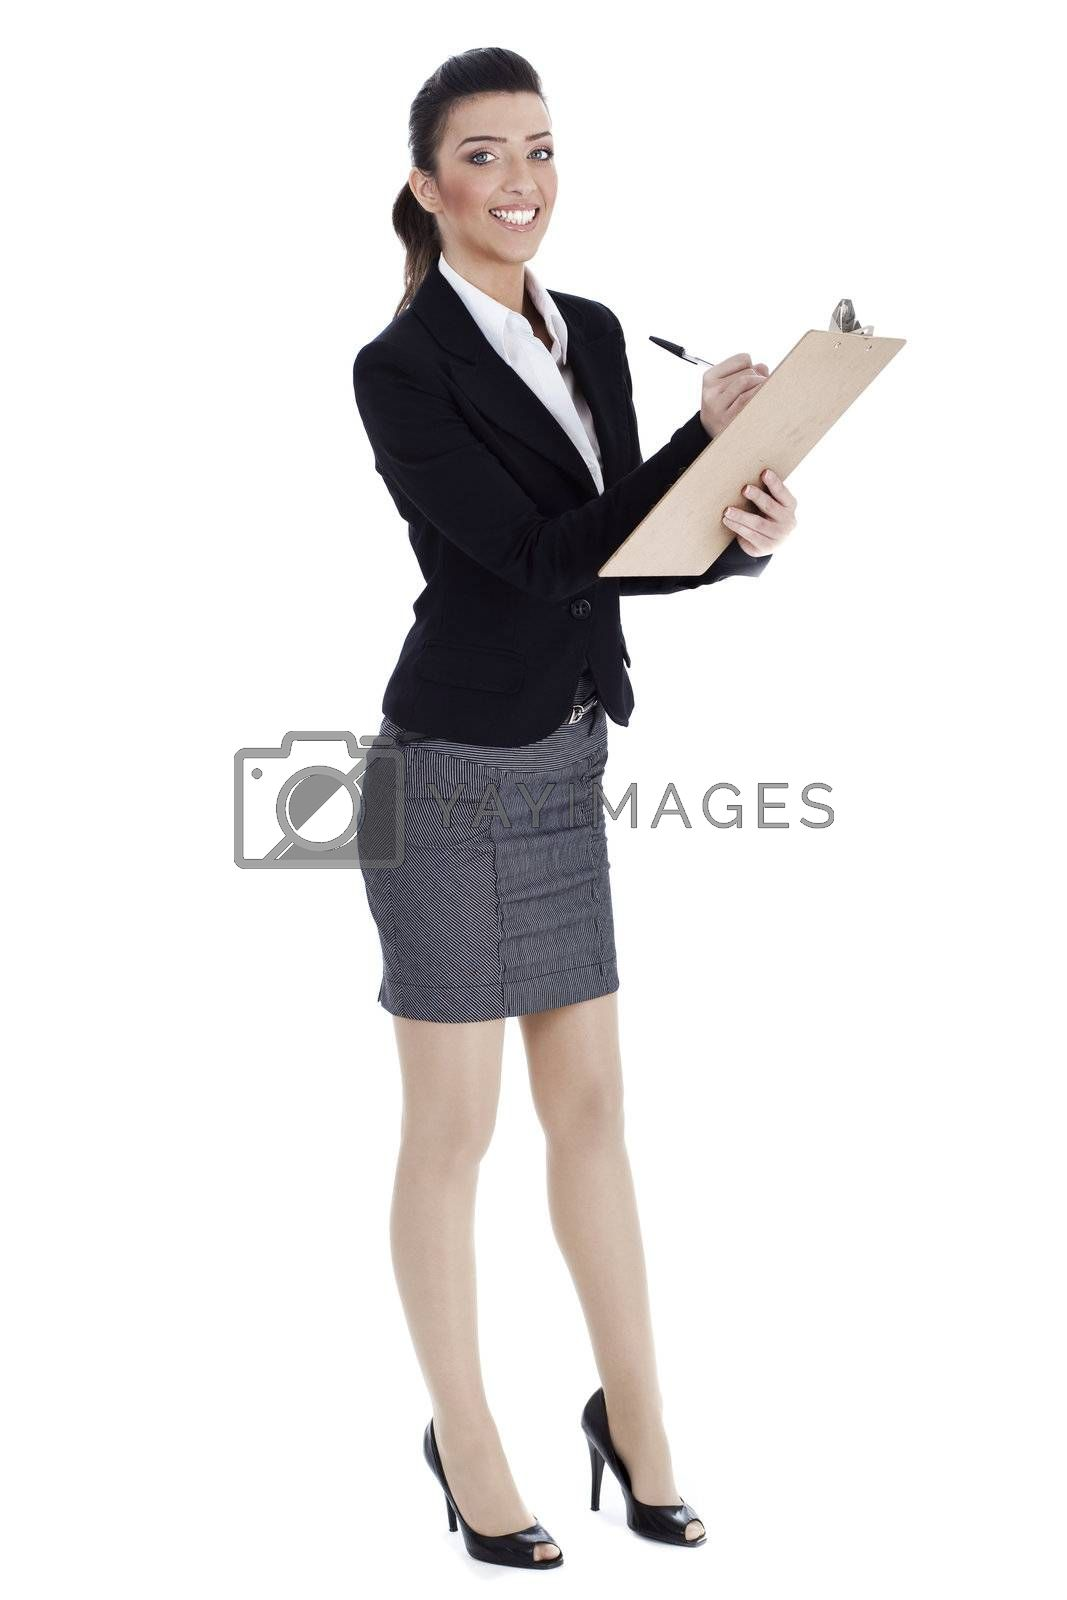 Royalty free image of Full length of business woman writing in pad by get4net